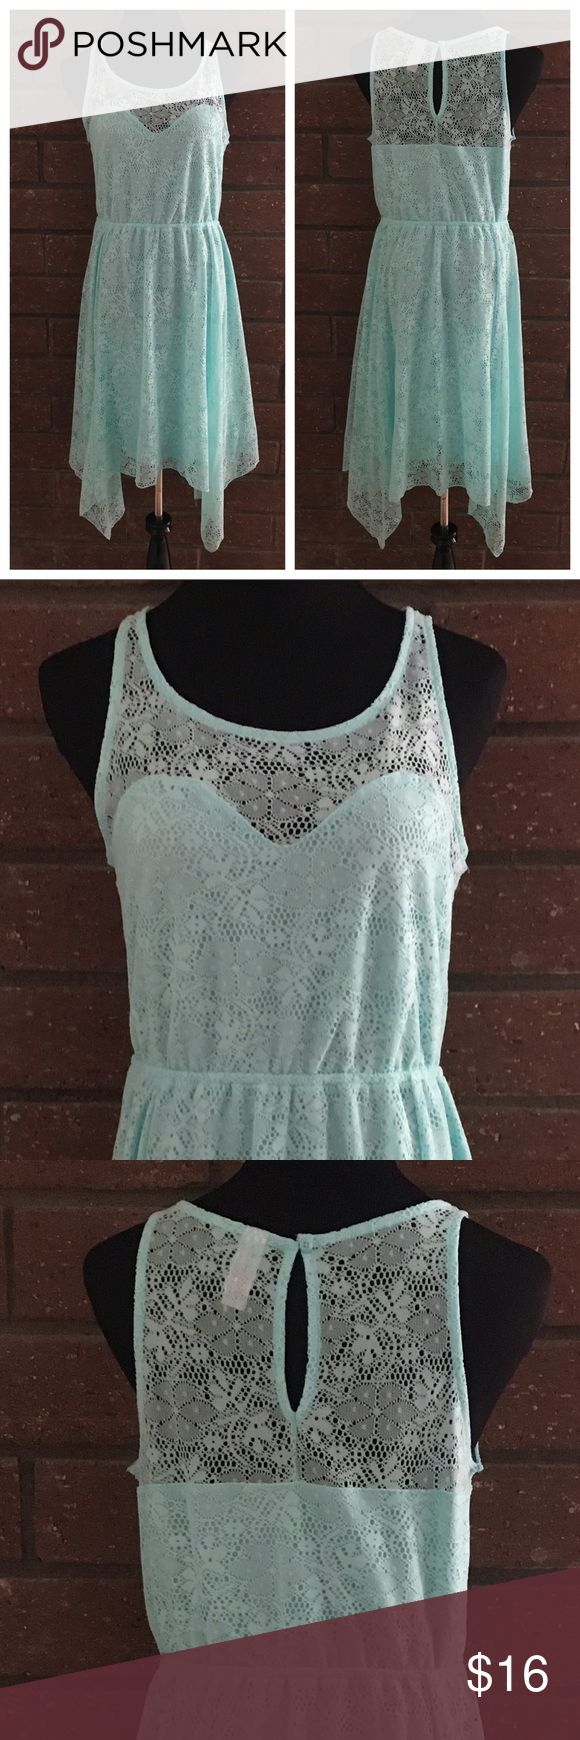 "🎁 Sleeveless Turquoise Lace Dress To hot for outdoor photos. 😉 This lovely sleeveless lace dress is 100% Polyester & lined. Single button back of neck & elastic waist. Measurements flat are 20"" pit to pit, 47"" long from shoulder seam to longest point at bottom of dress, 14"" relaxed & 21"" stretched waist. In excellent new condition with NO damage. NWT Also available in peach. Tag says XL (15-17). No Boundaries Dresses"